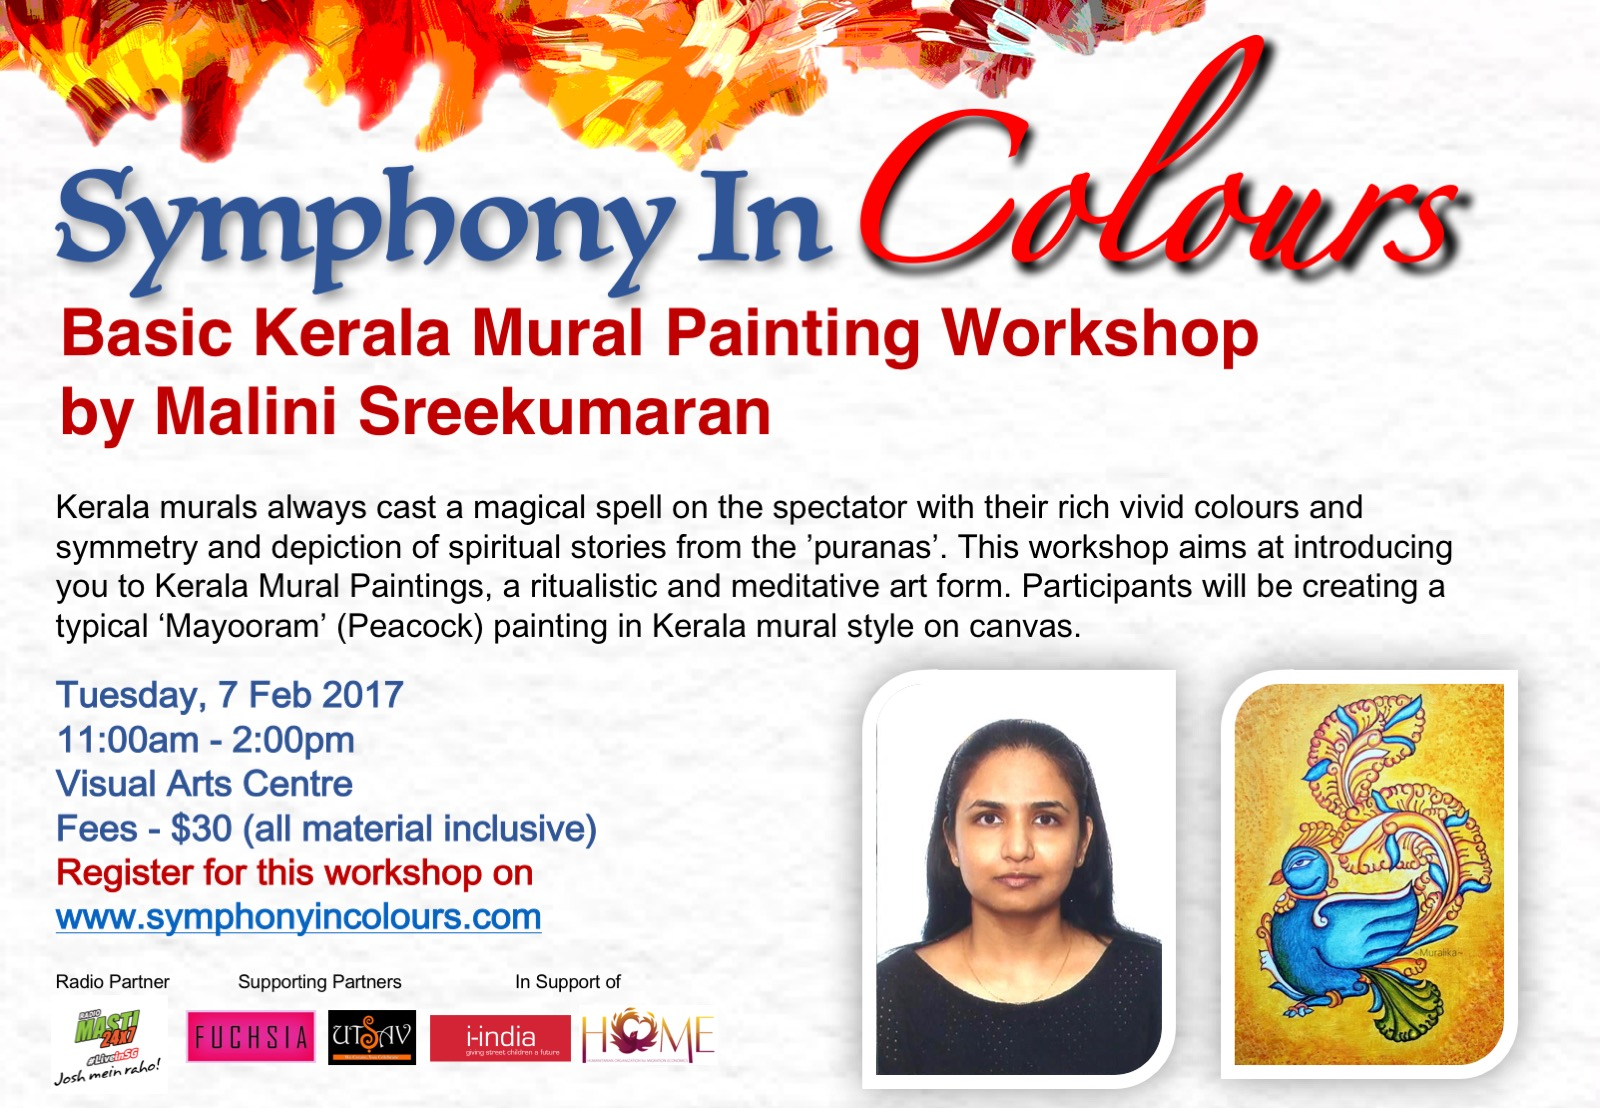 Symphony in colours - Workshop poster 3